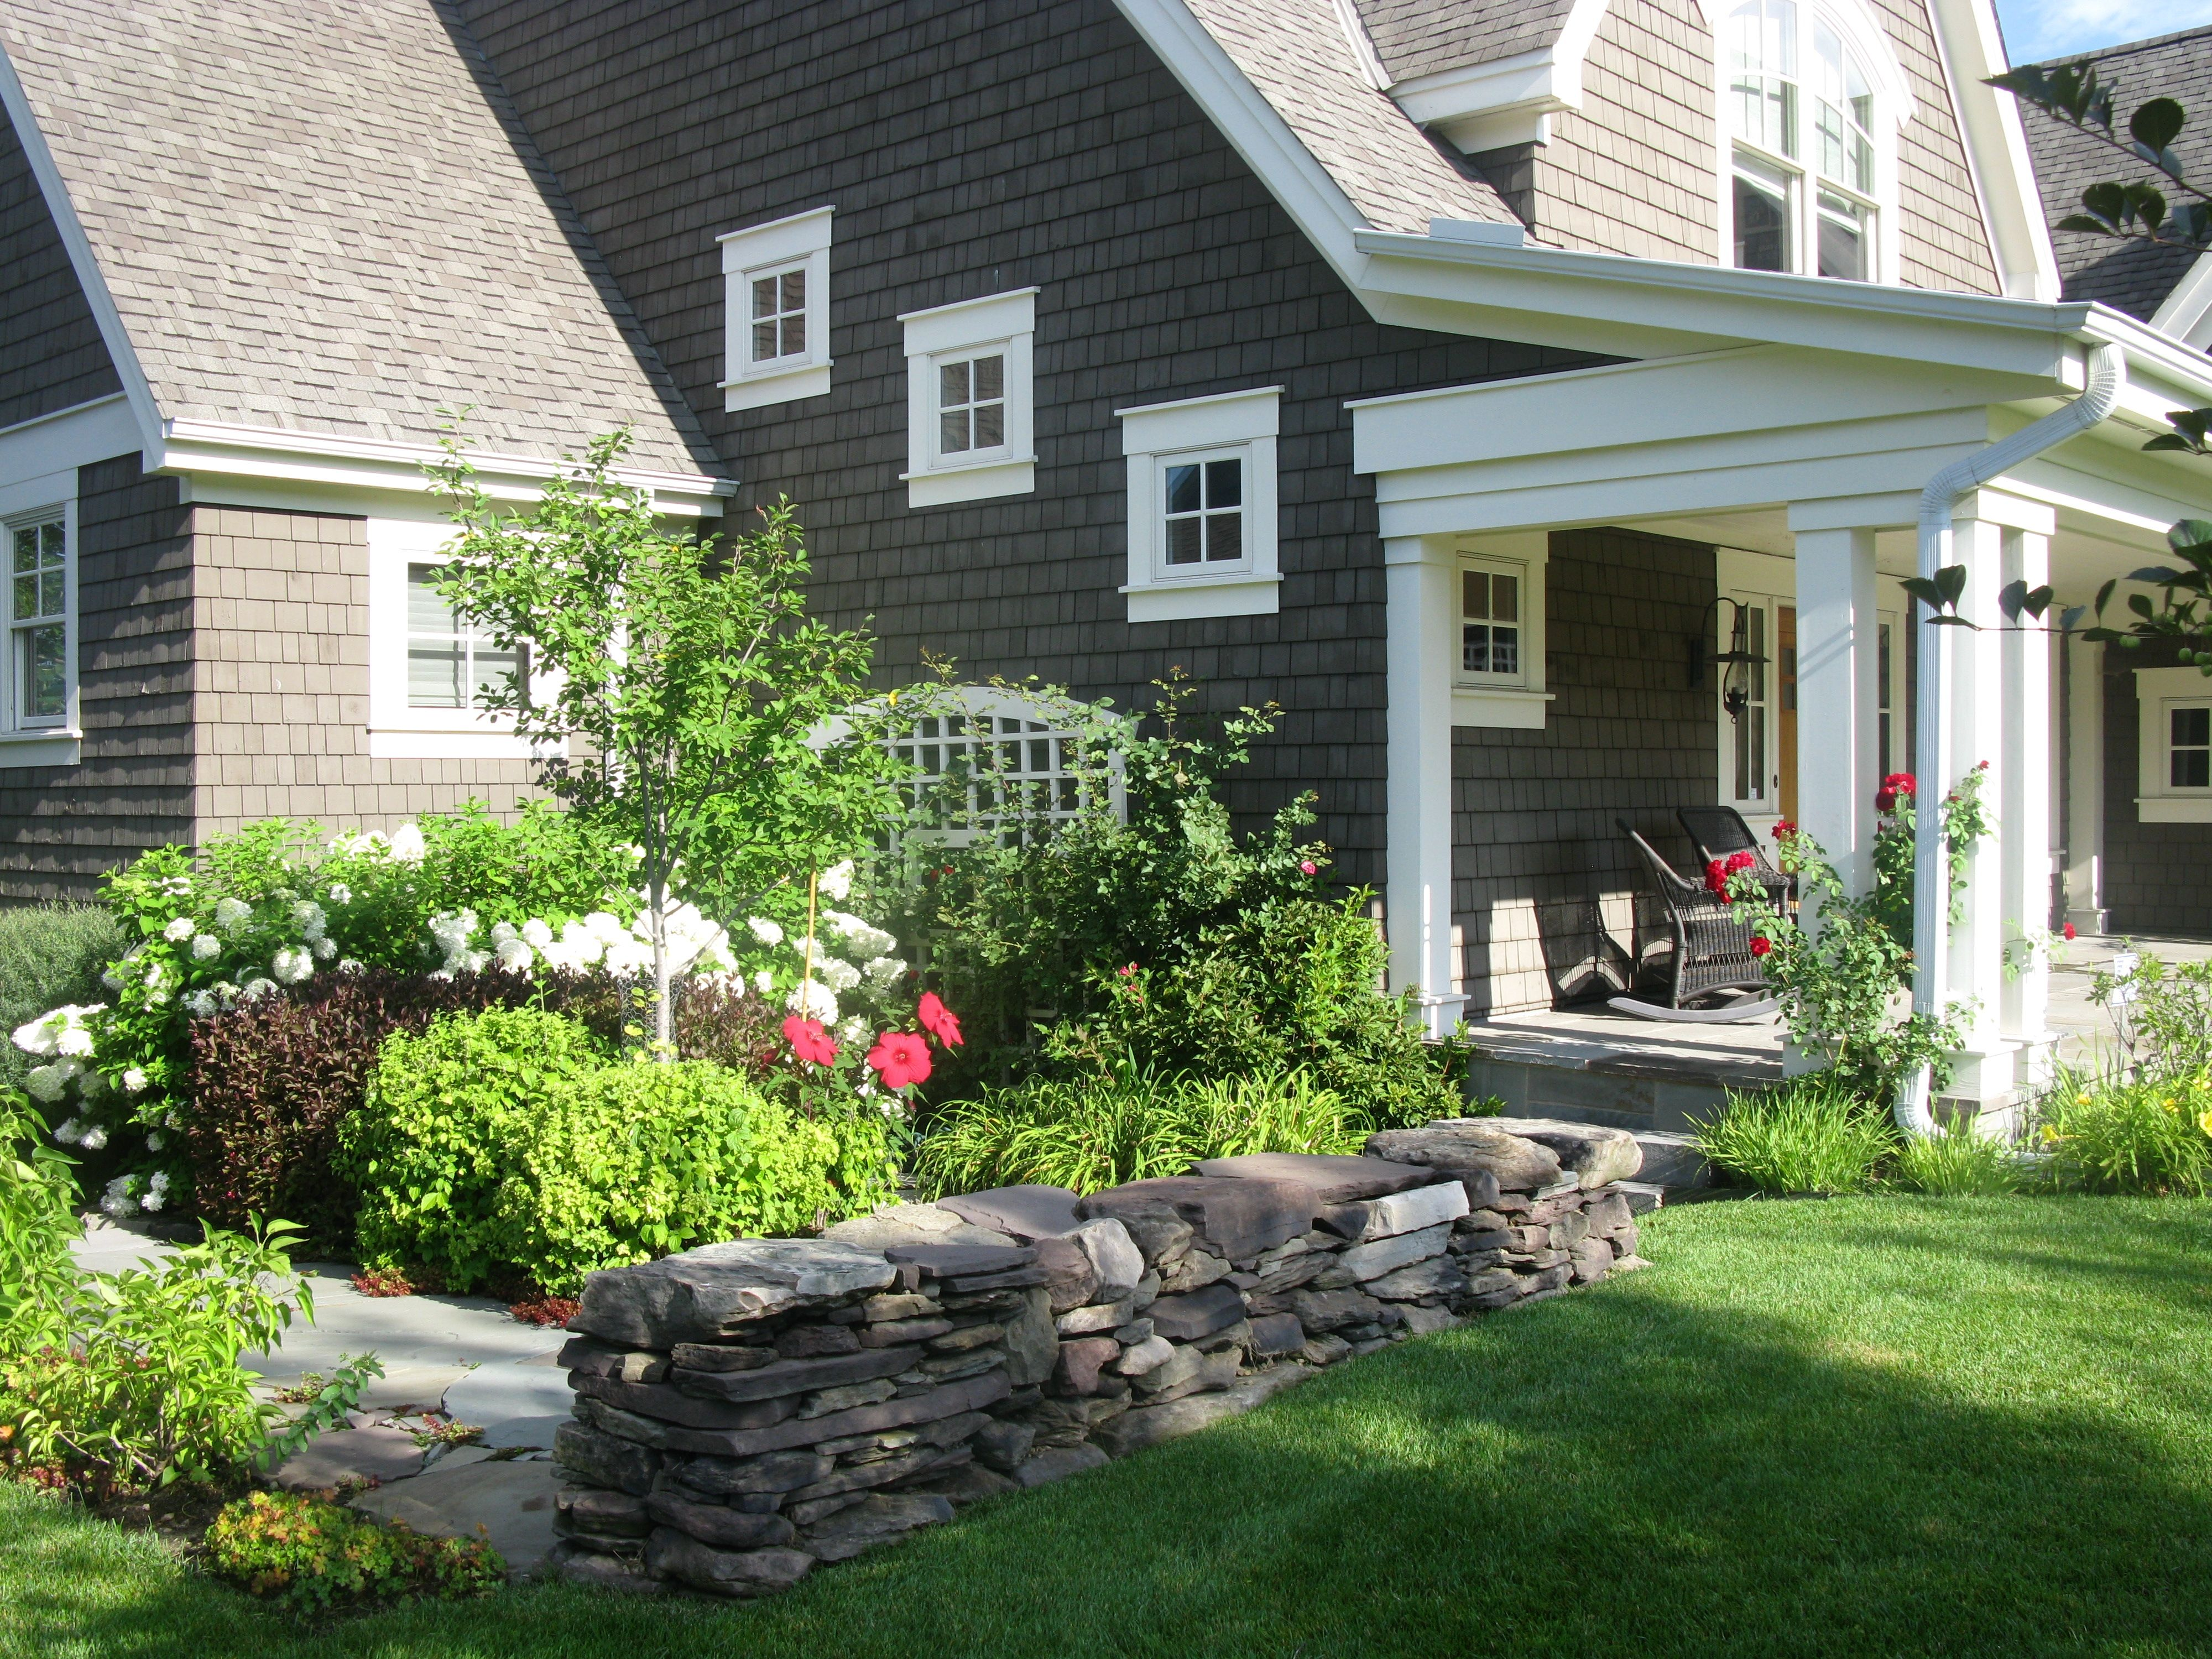 Landscaping ideas for front of house with porch to House landscaping ideas